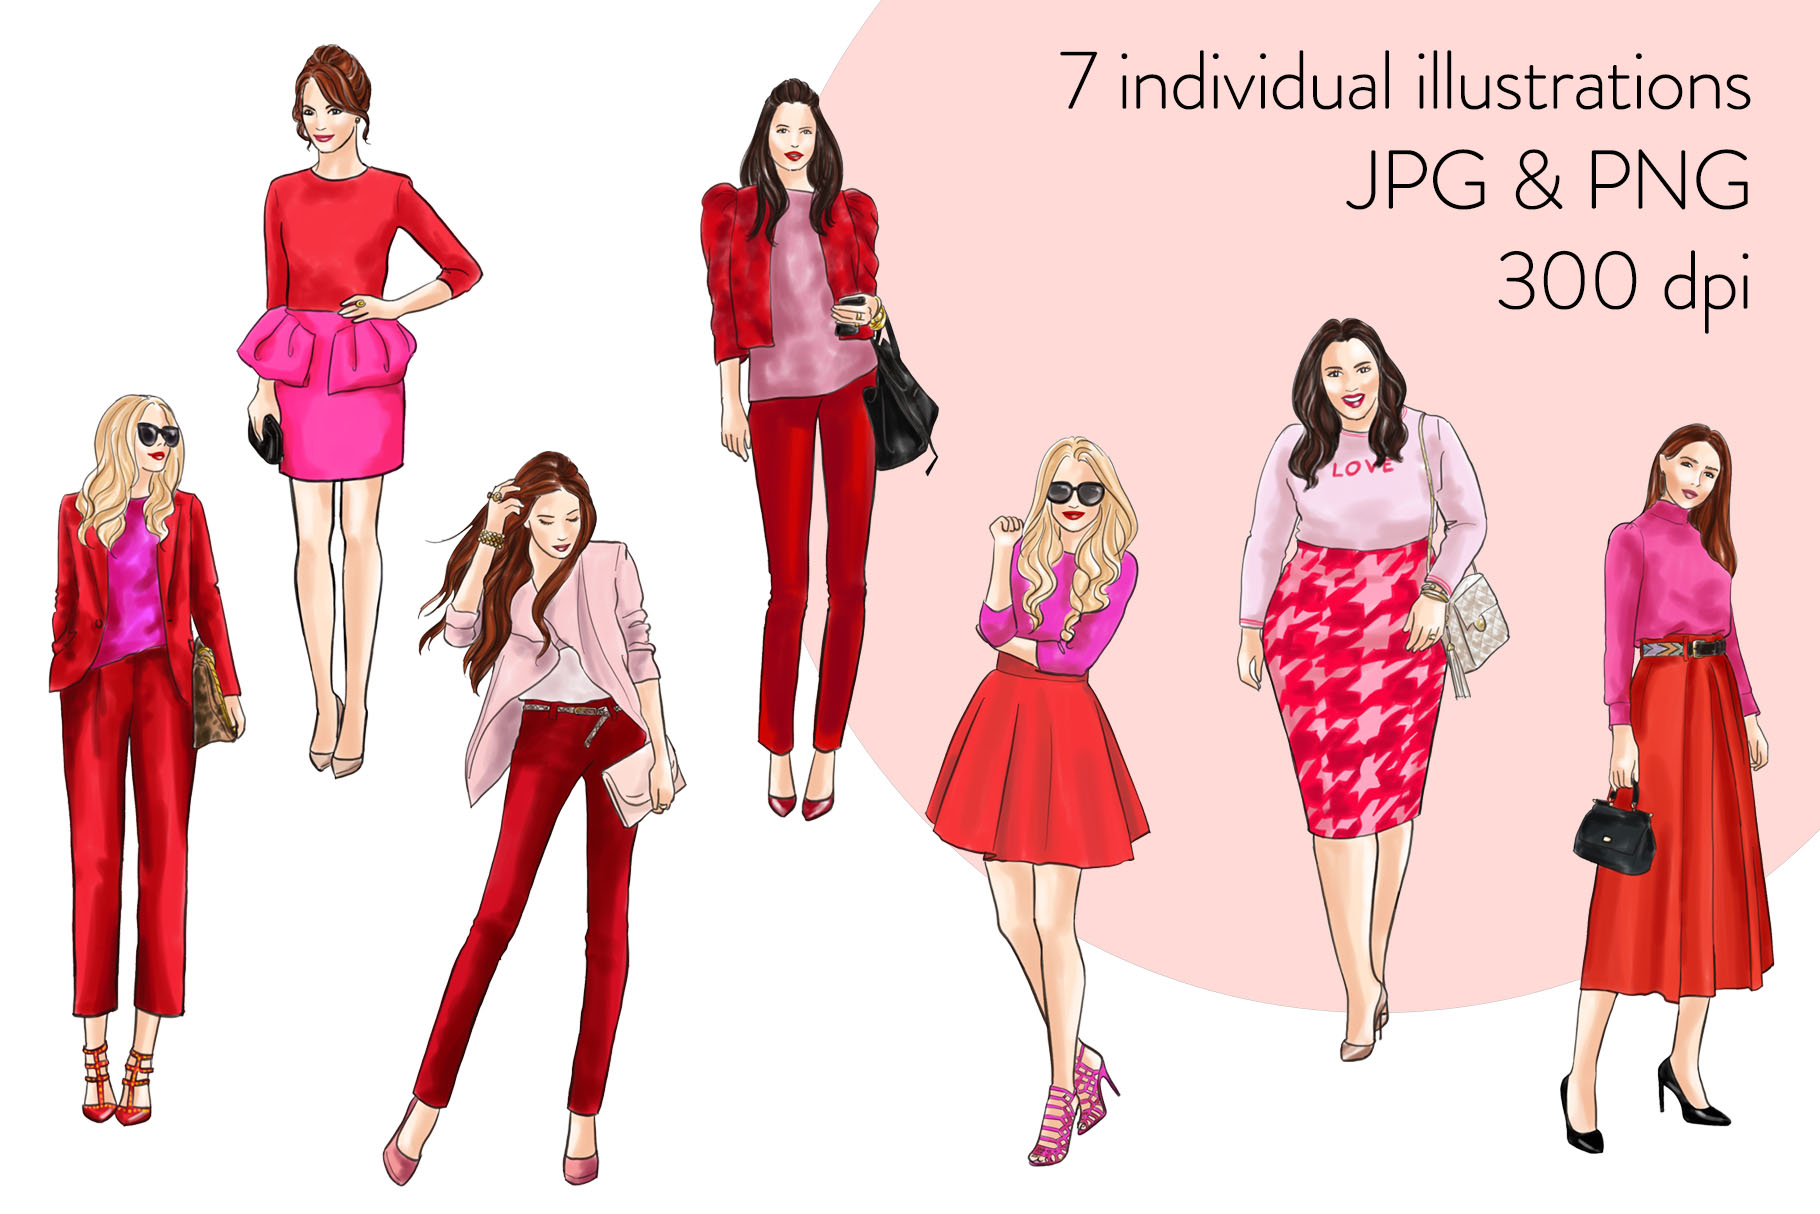 Fashion illustration clipart - Girls in Red and Pink - Light example image 2